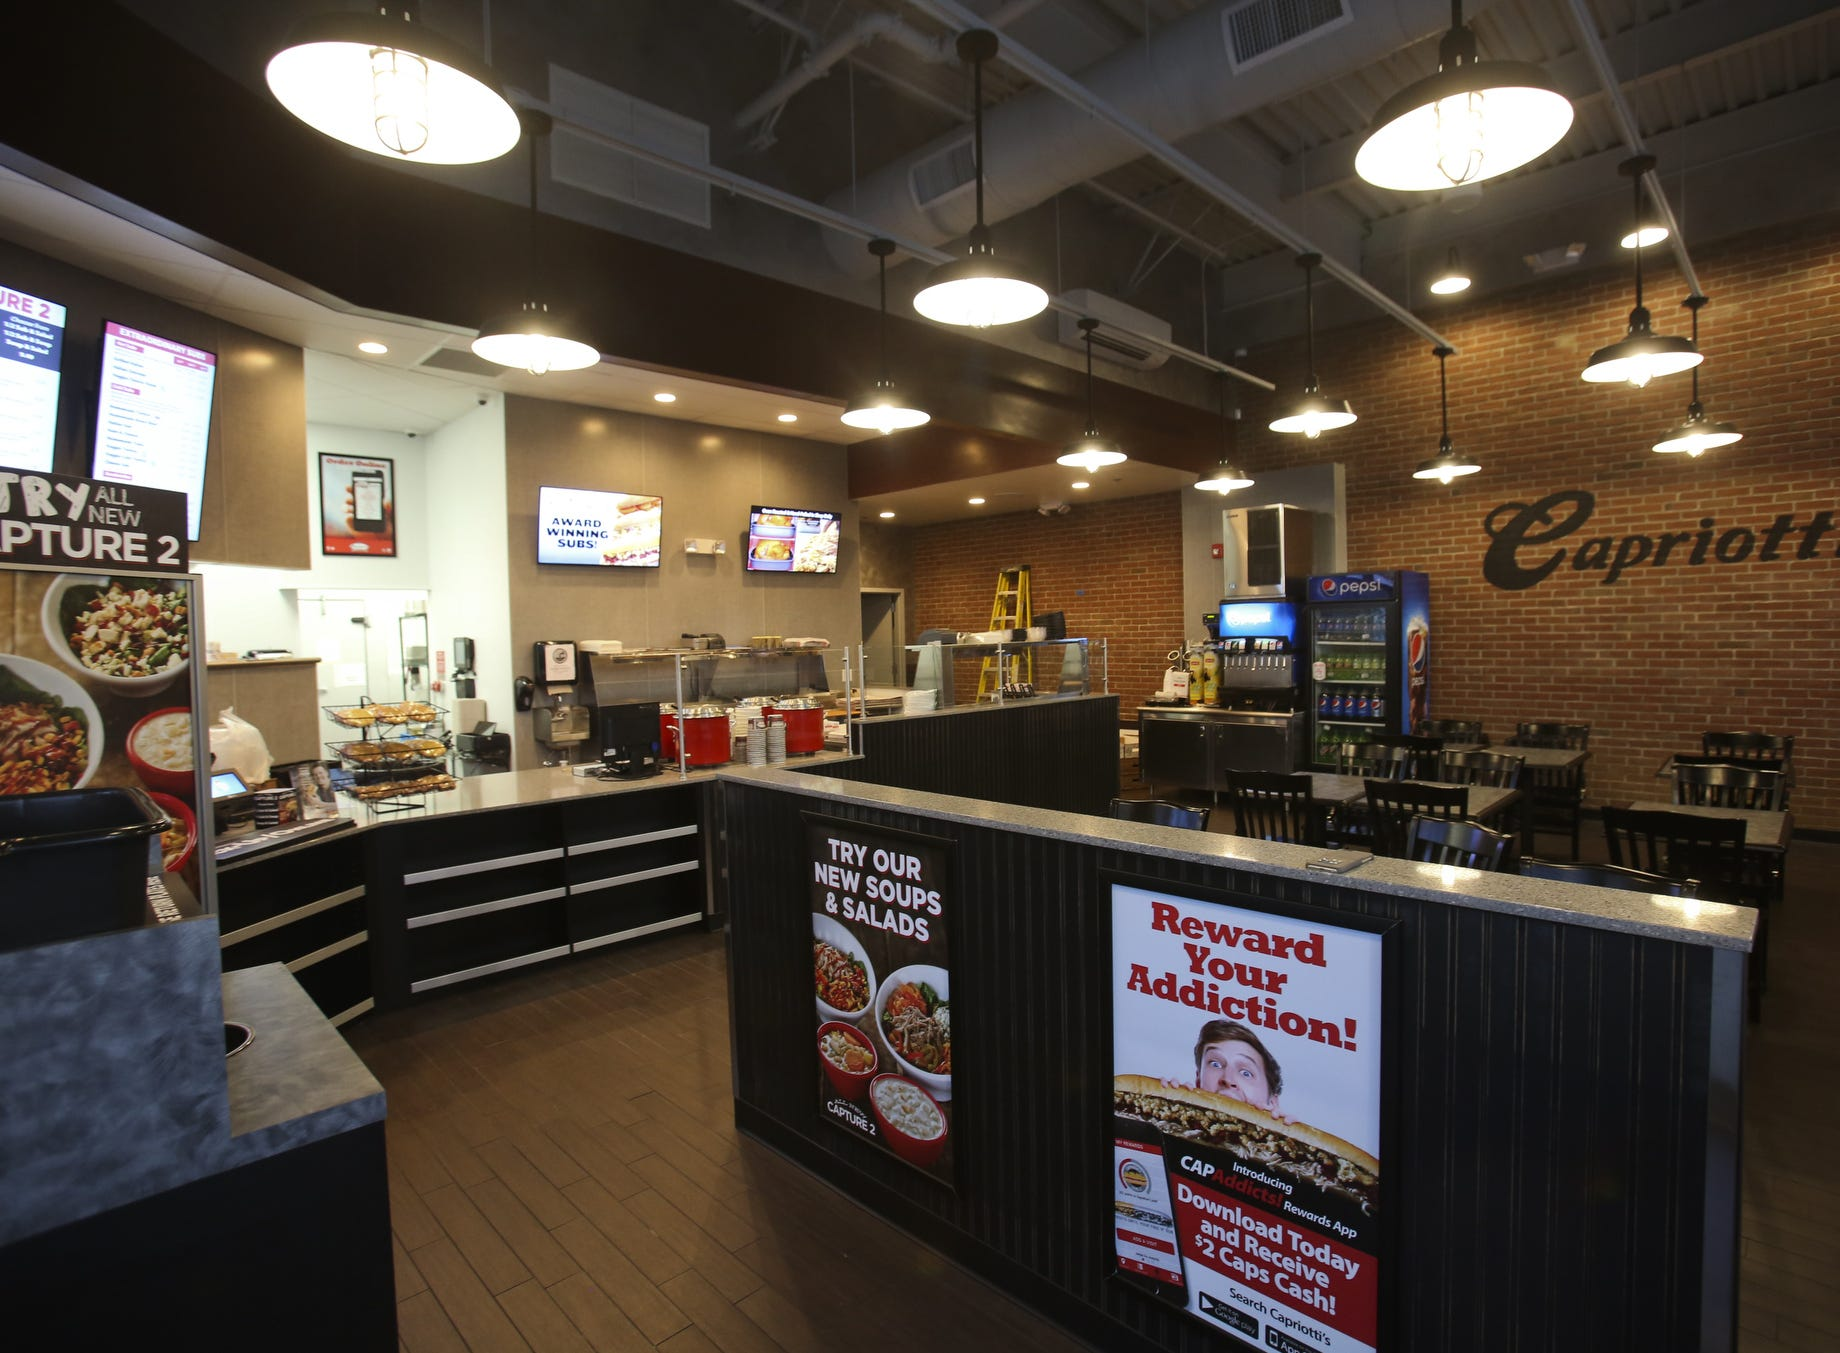 The new Capriotti's Newark location, across from the old one in the Newark Shopping Center, opened in 2016.